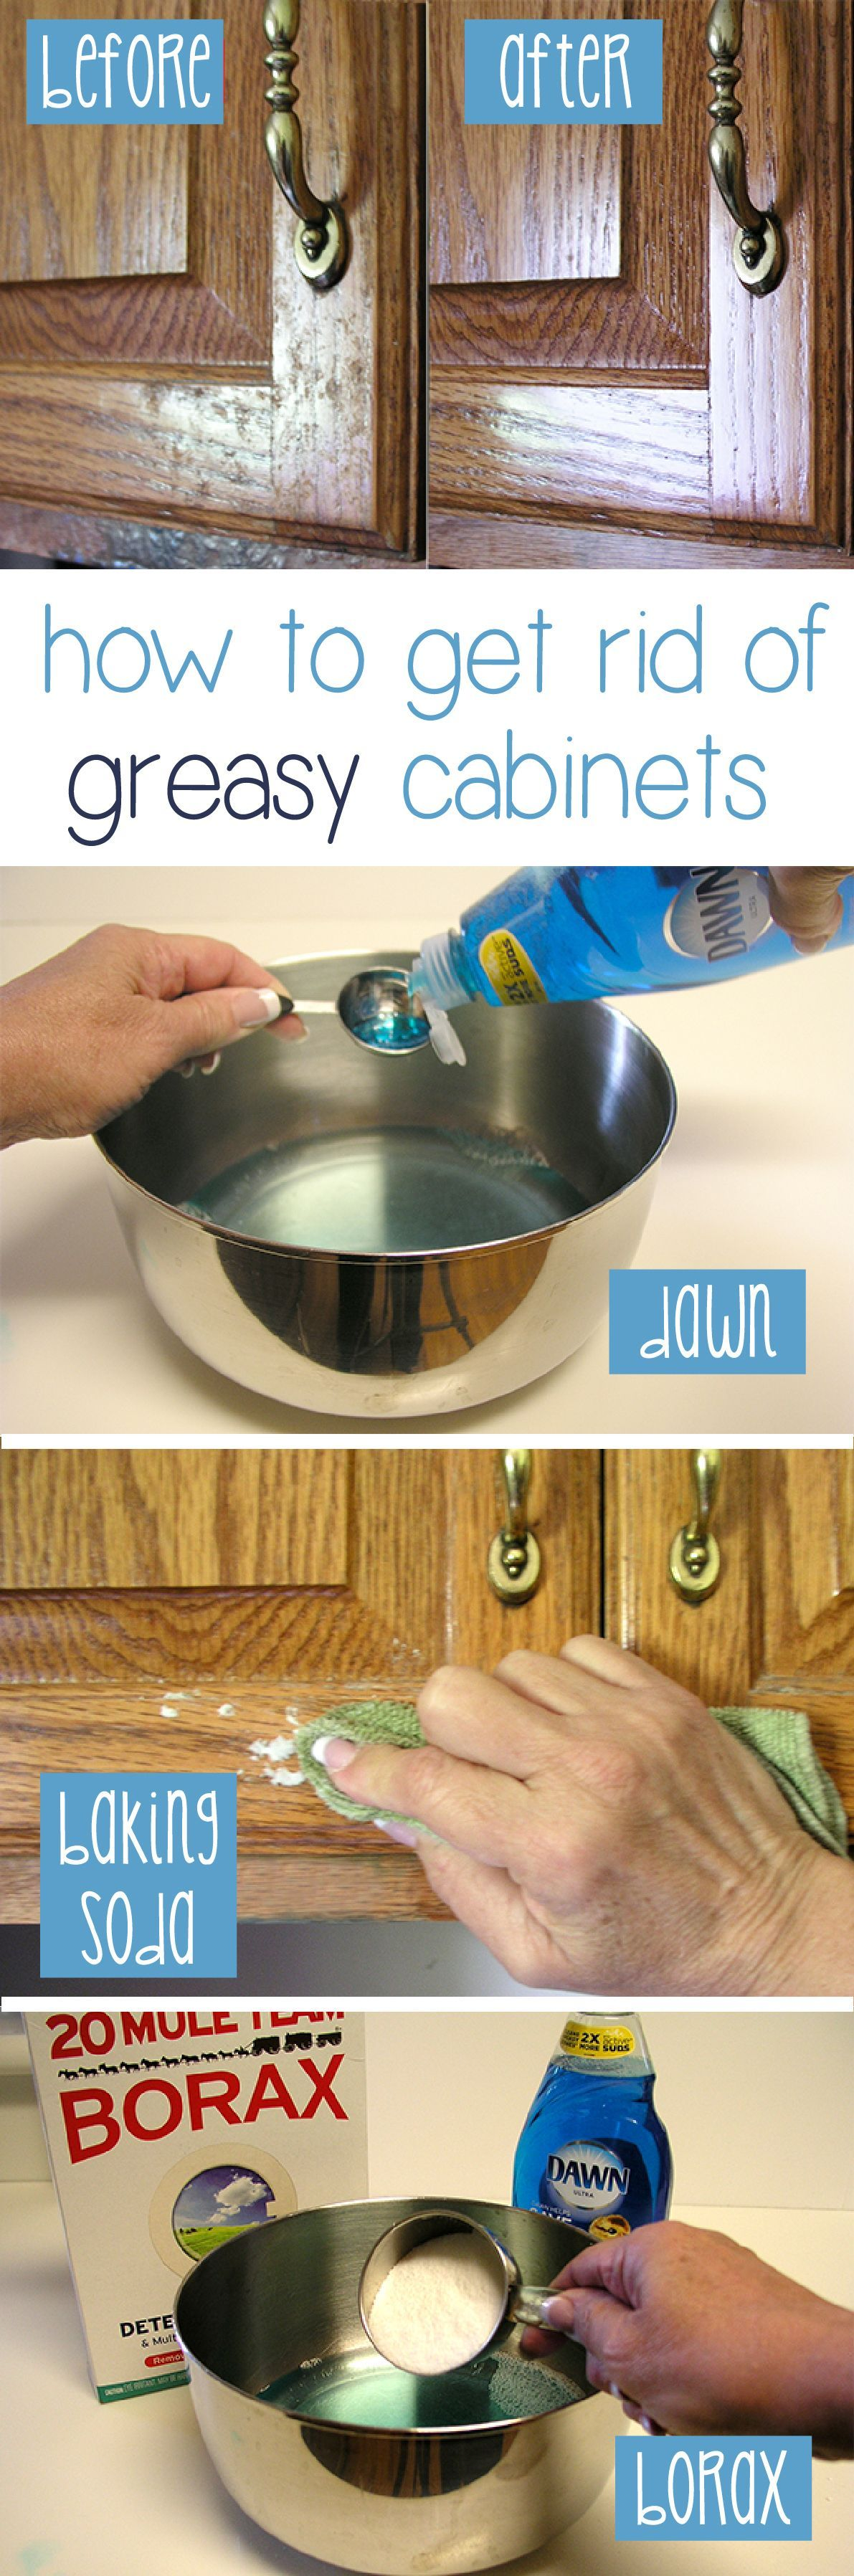 How to clean grease from kitchen cabinet doors kitchen - Limpiar armarios cocina ...